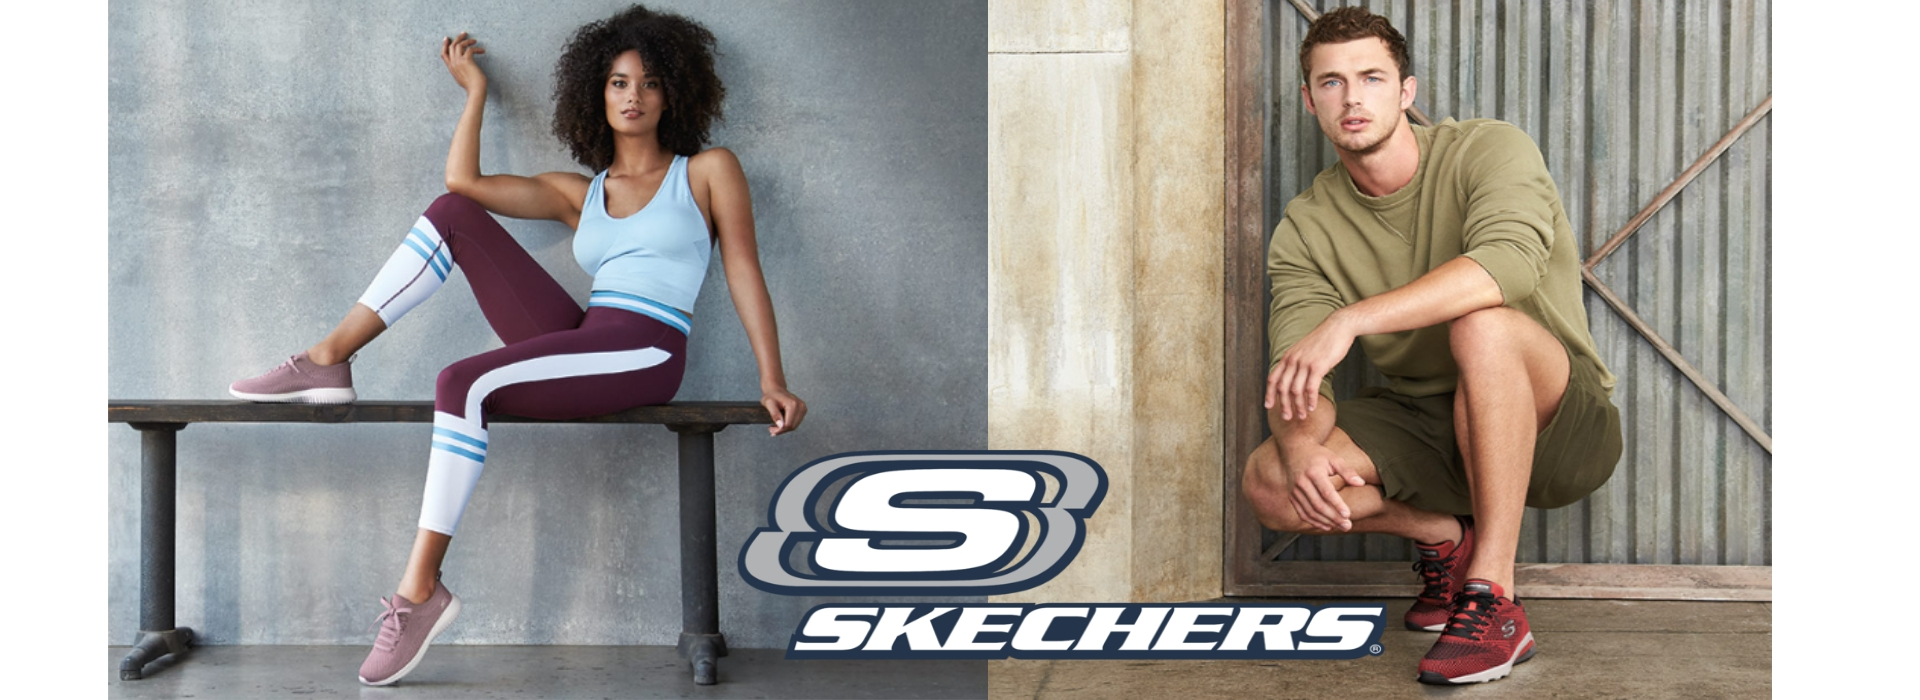 sketchers-adults-brand-banner-2.jpg